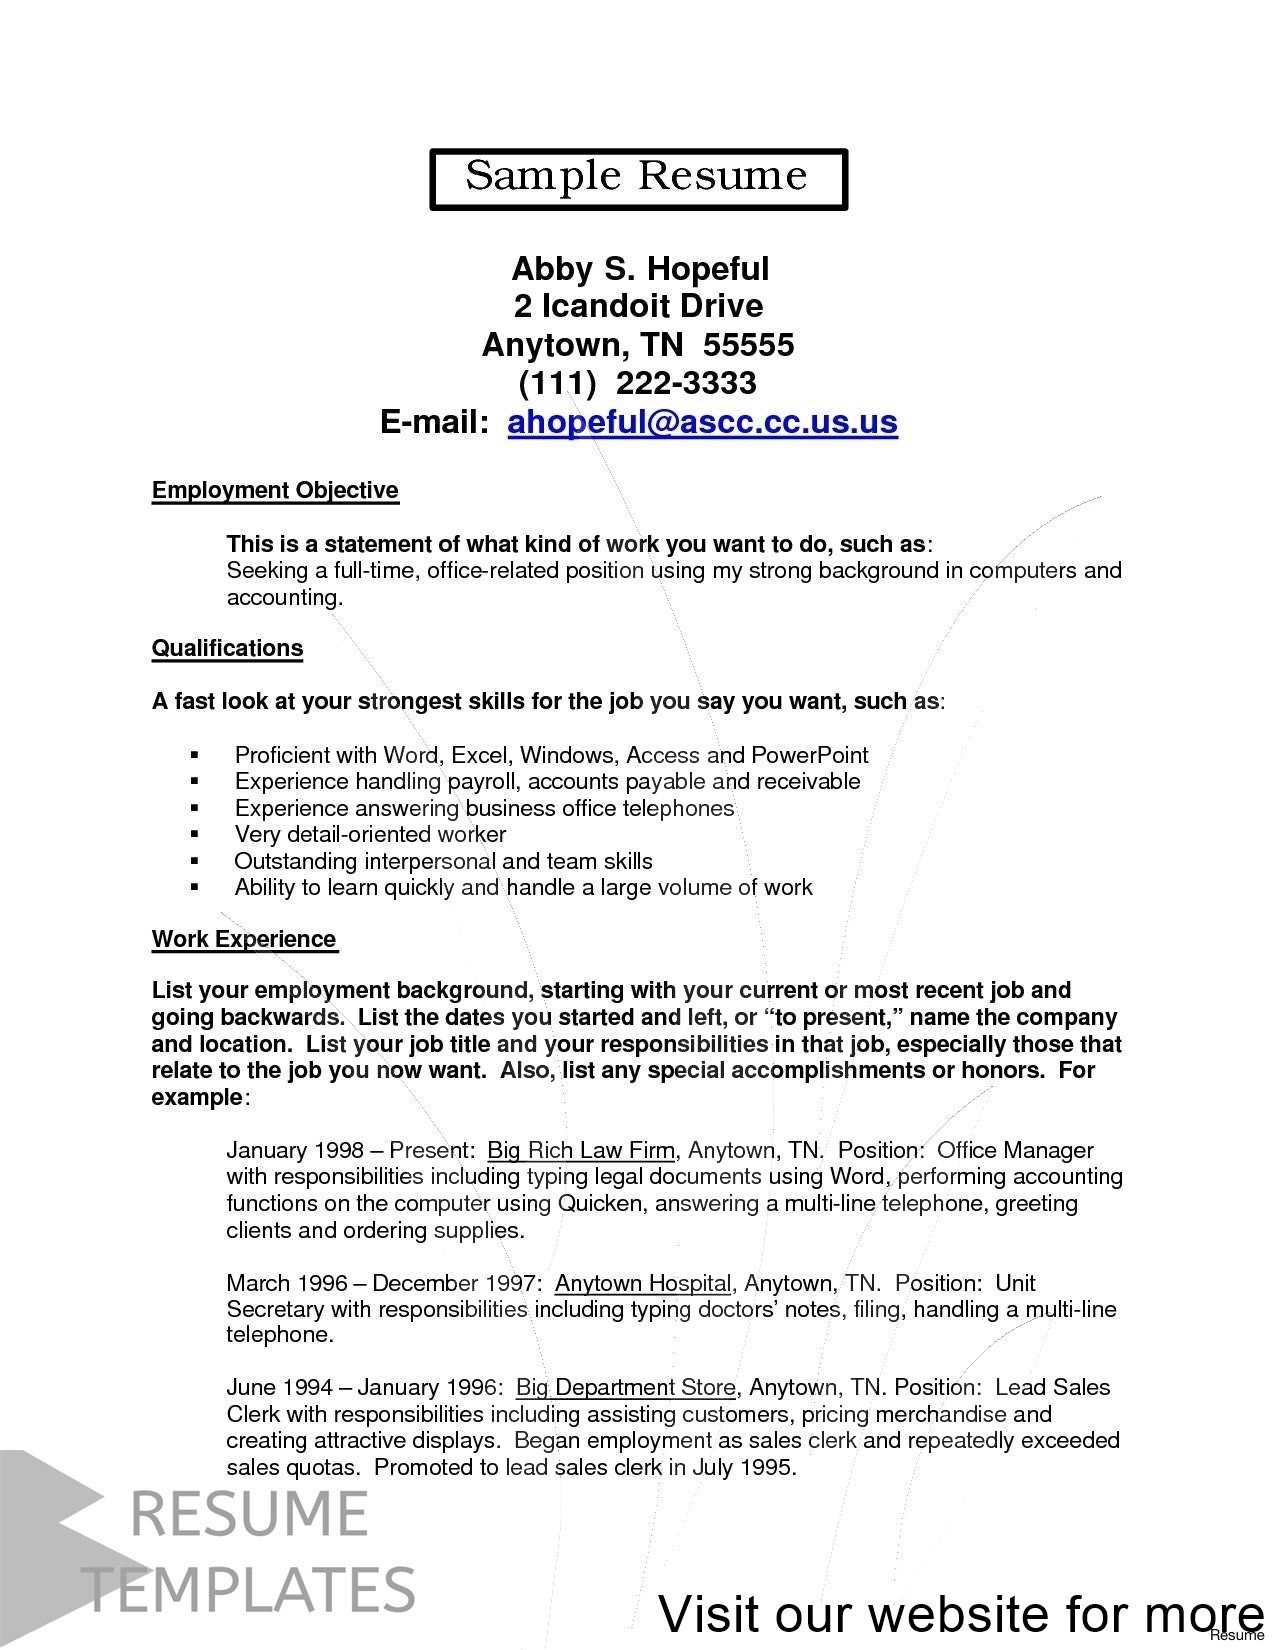 resume examples for freshers (2020) Resume examples, One